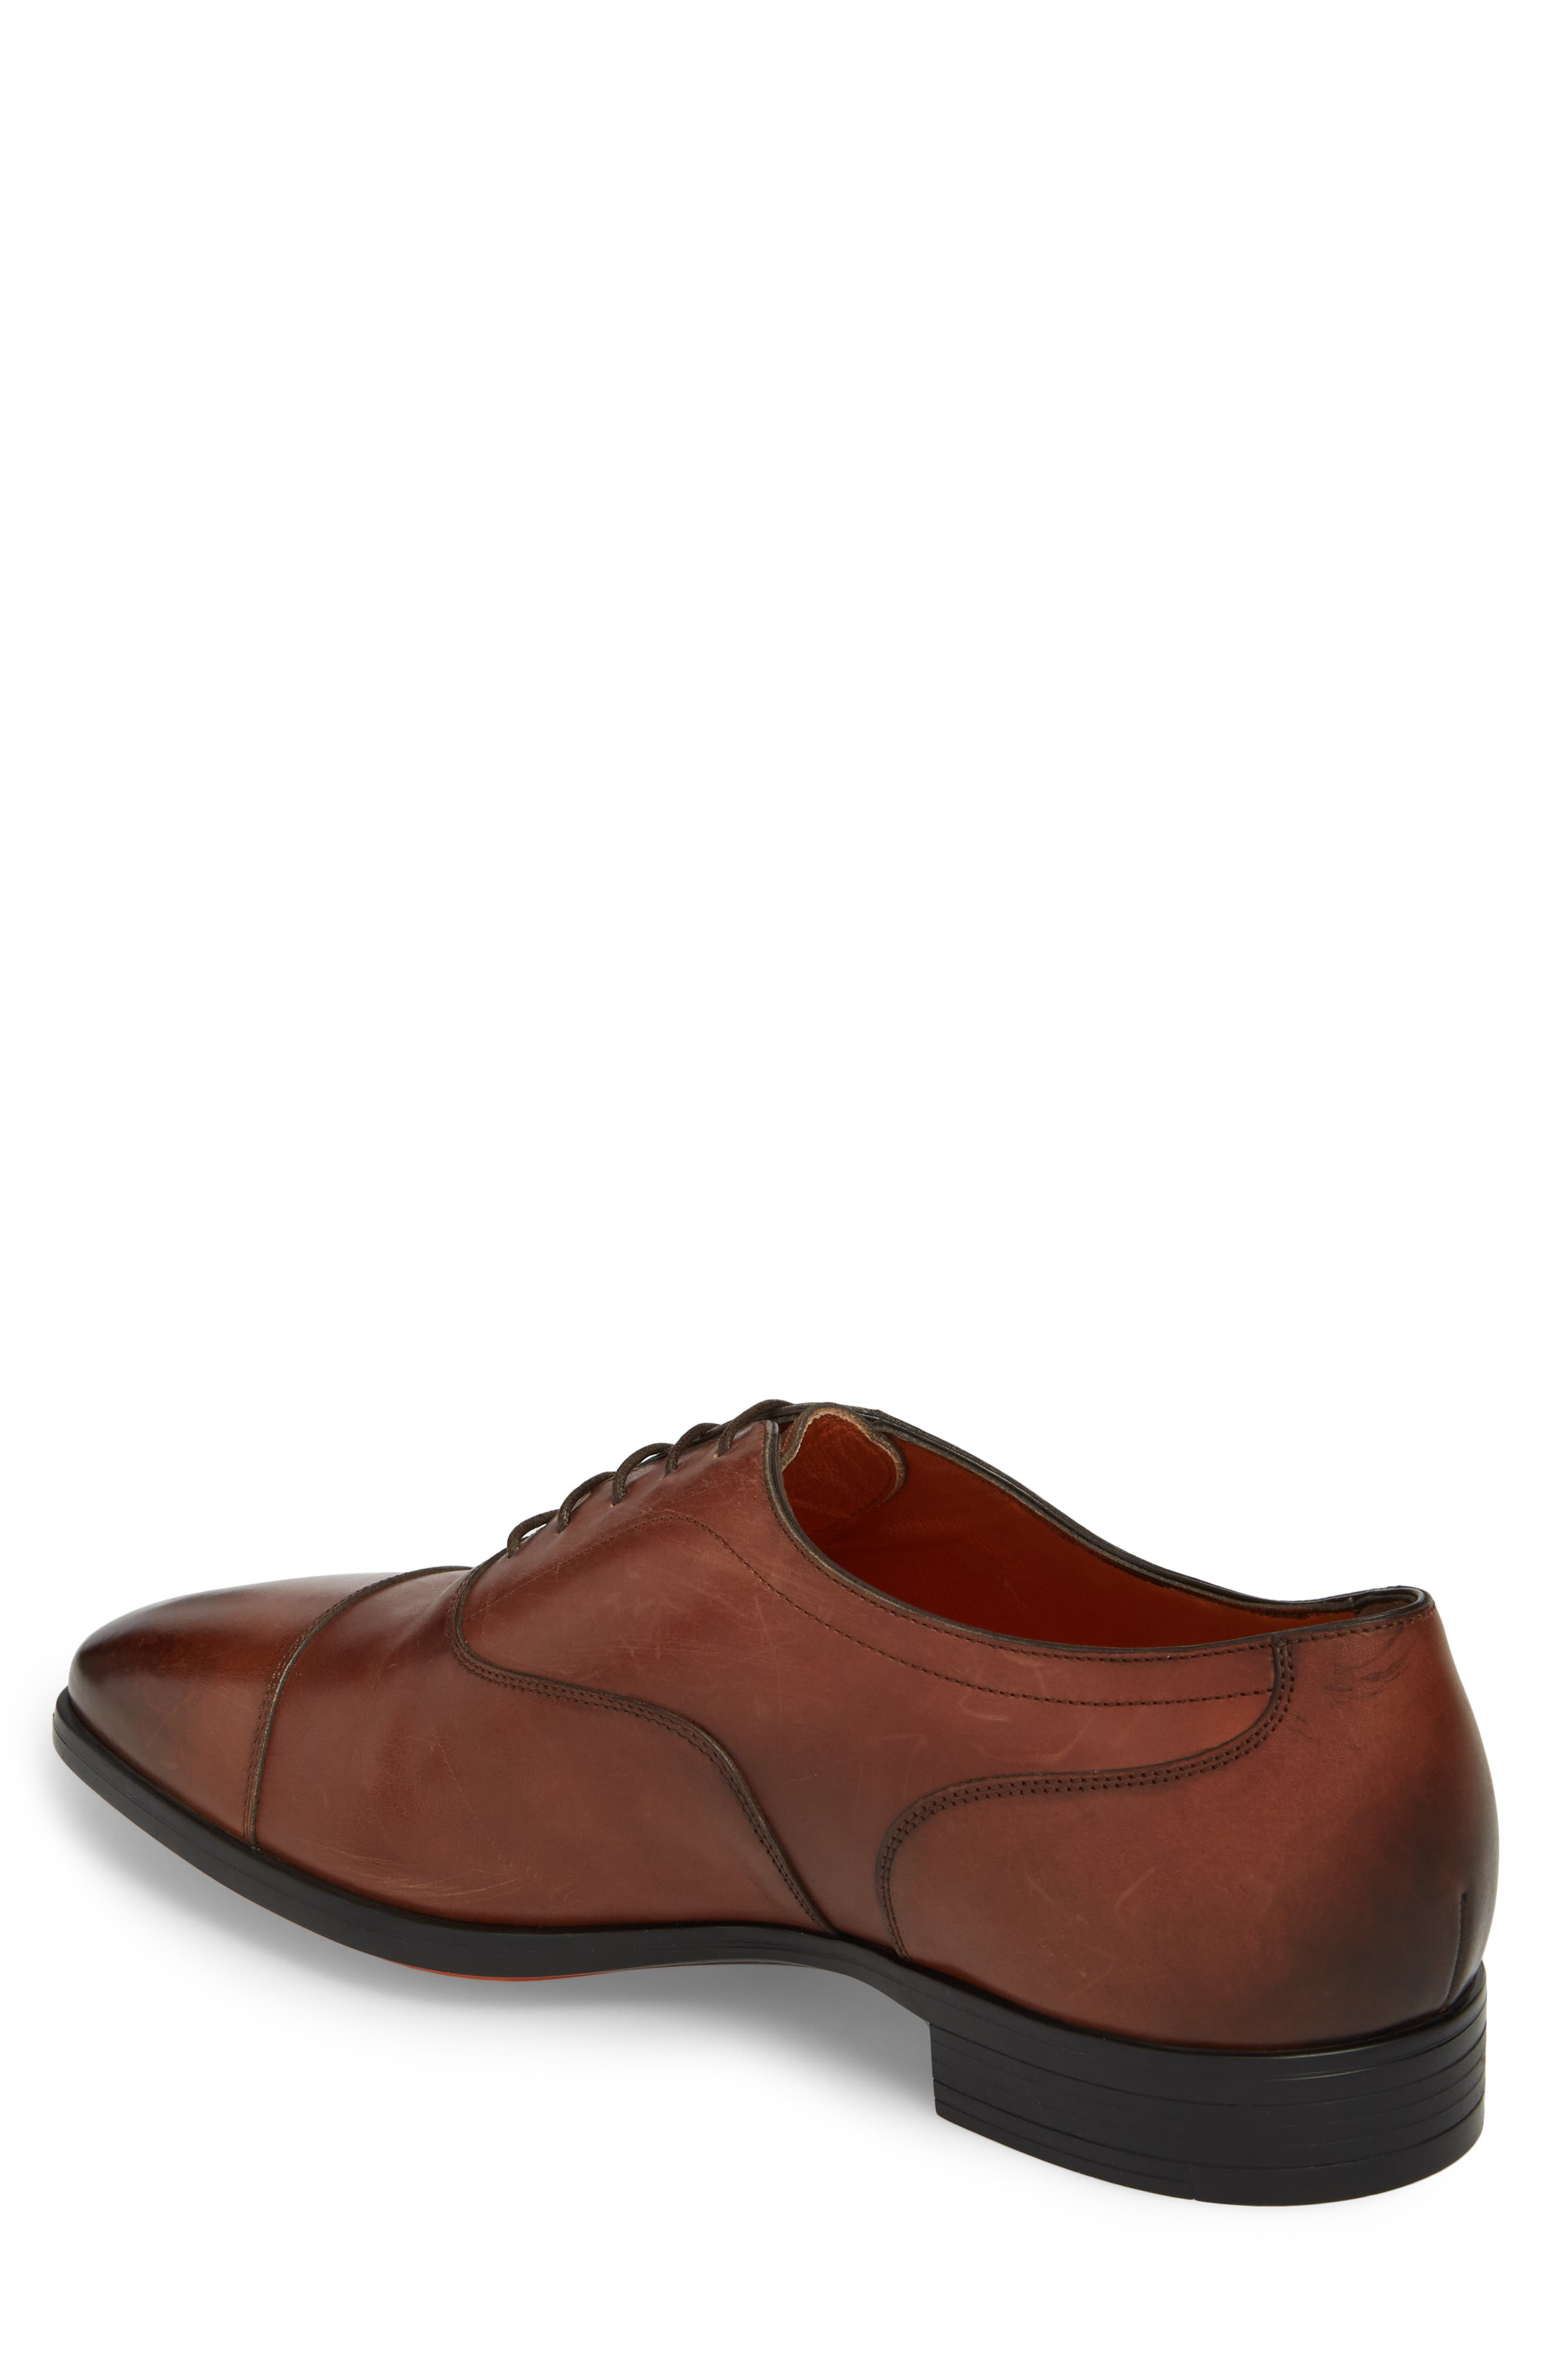 Eamon Cap Toe Oxford,                             Alternate thumbnail 2, color,                             BROWN